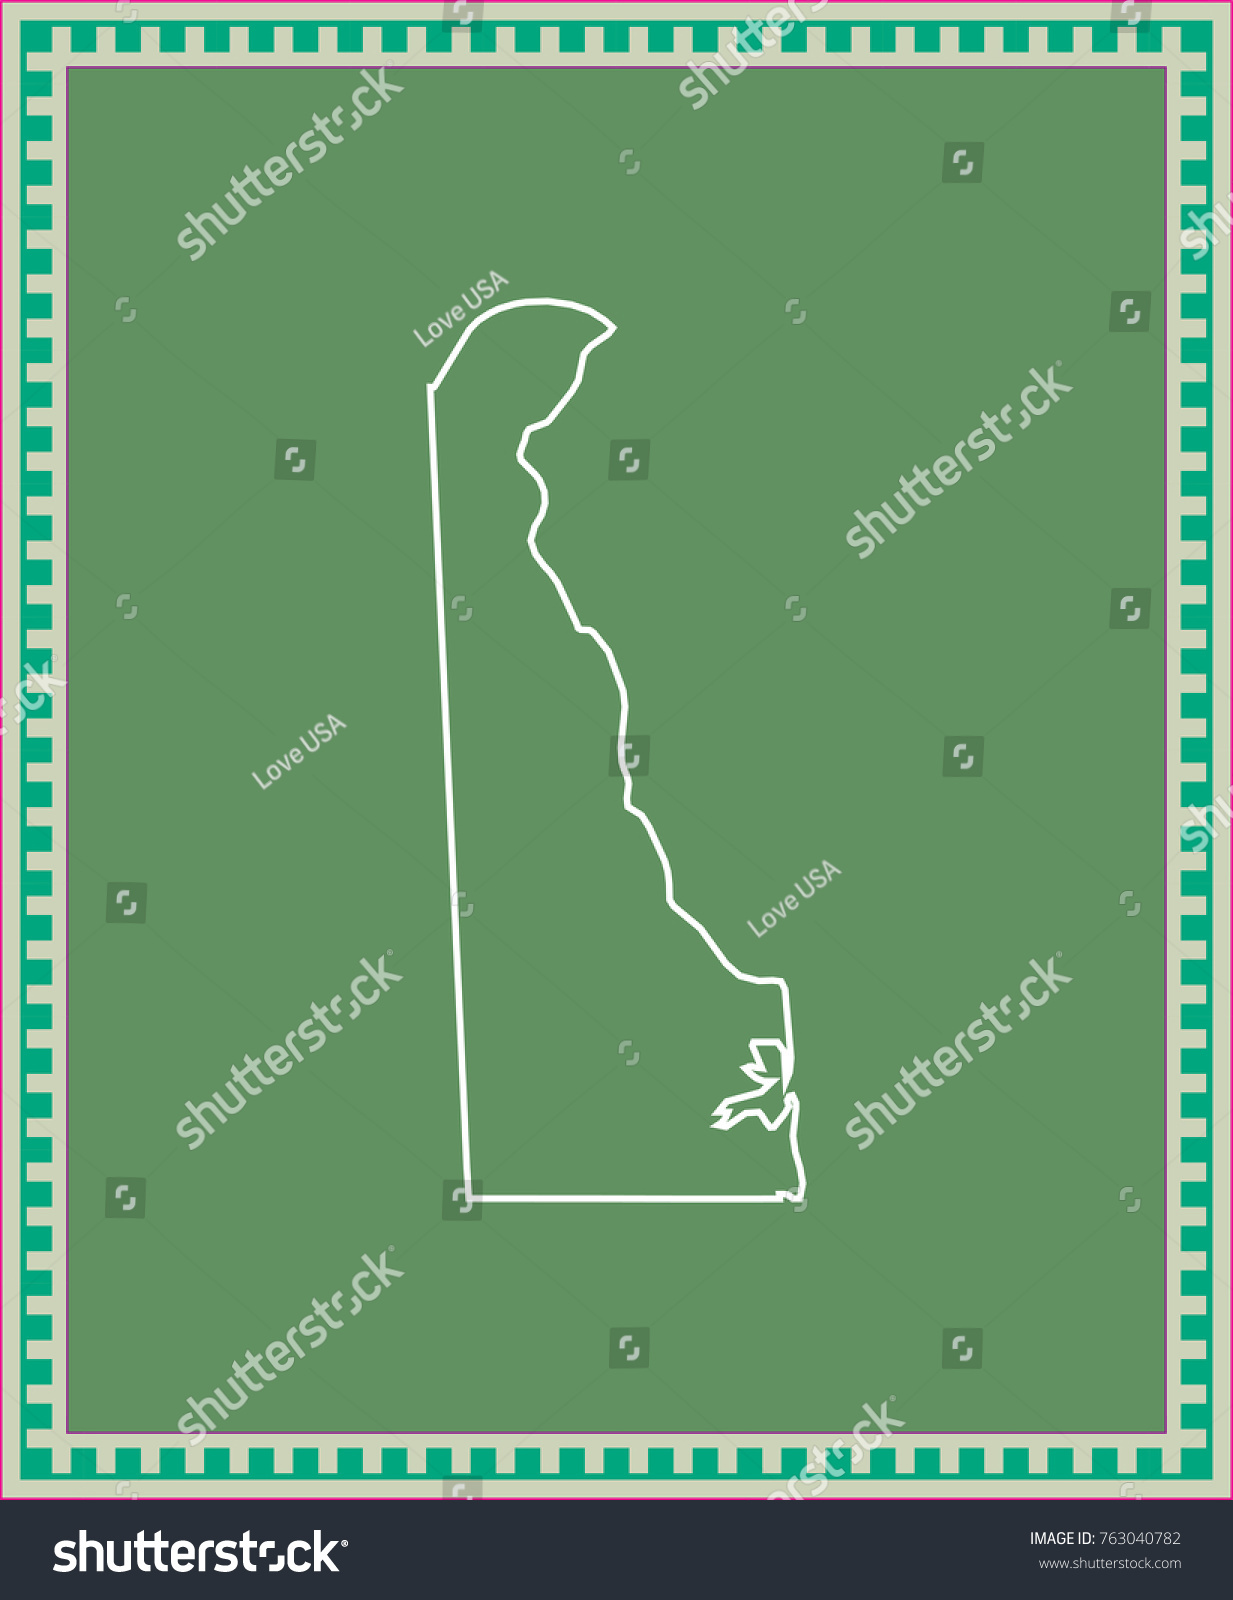 delaware state usa map vector outline stock vector 763040782 stock vector delaware state of usa map